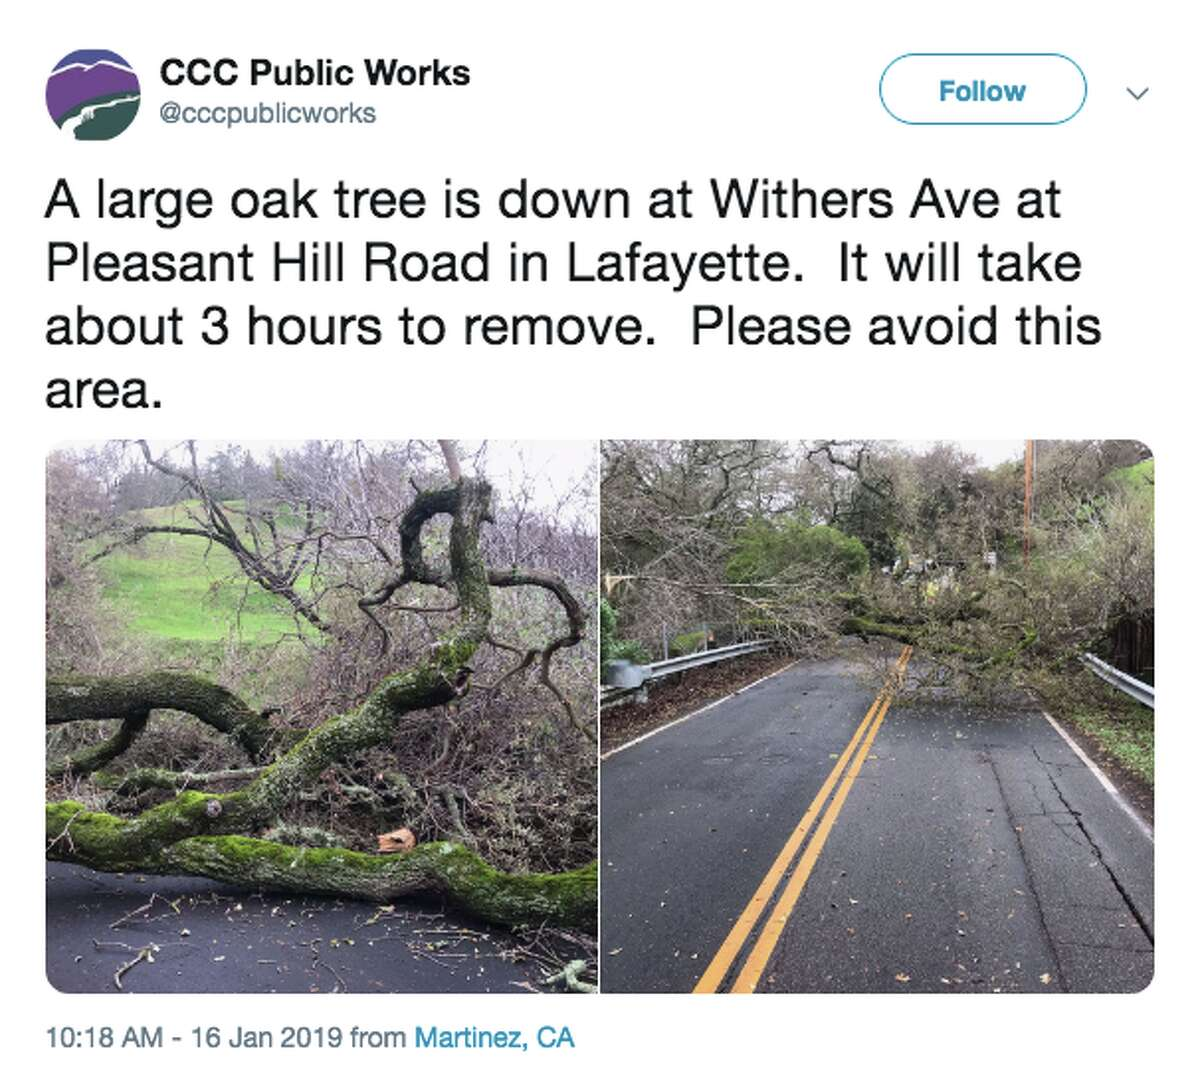 CCC Public works tweeted photos of an oak tree down at Withers Ave at Pleasant Hill Road in Lafayette on Jan. 16, 2019. The area should be avoided.